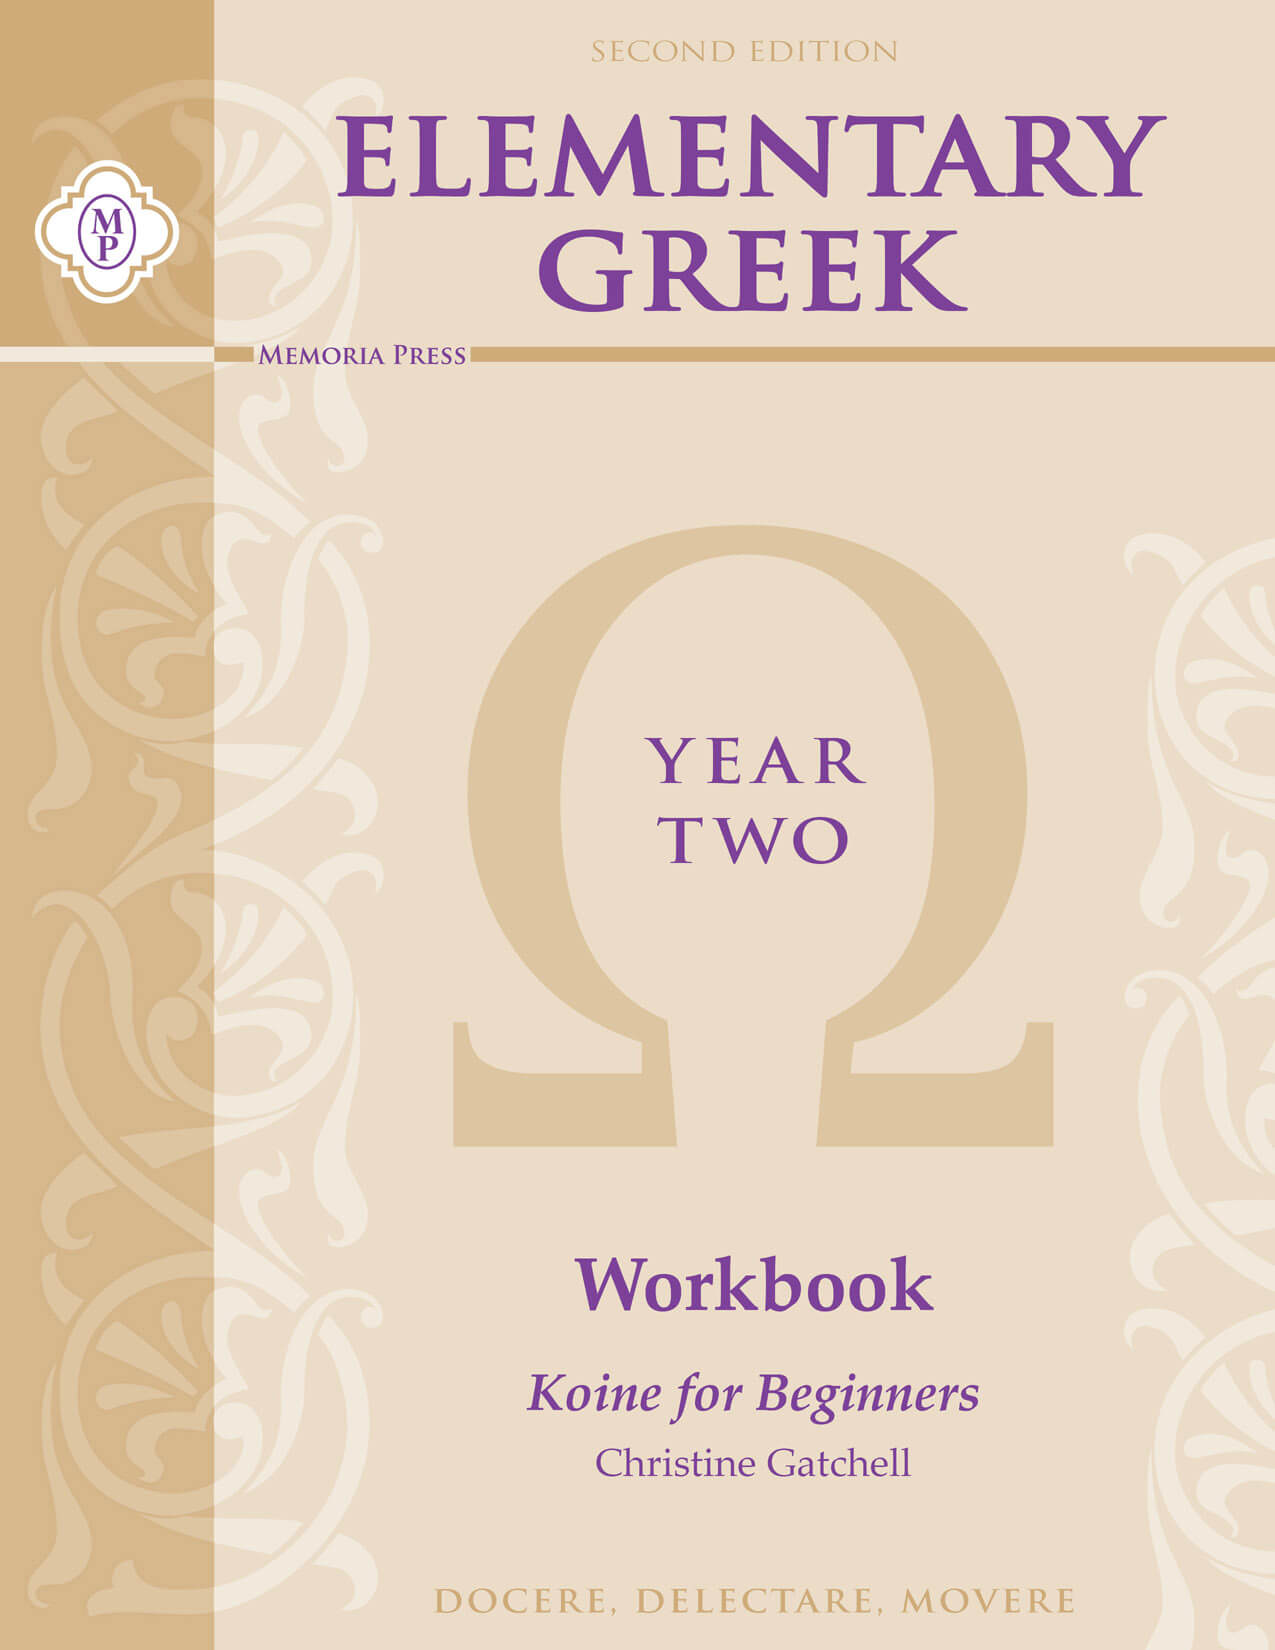 Elementary Greek: Year 2 Workbook